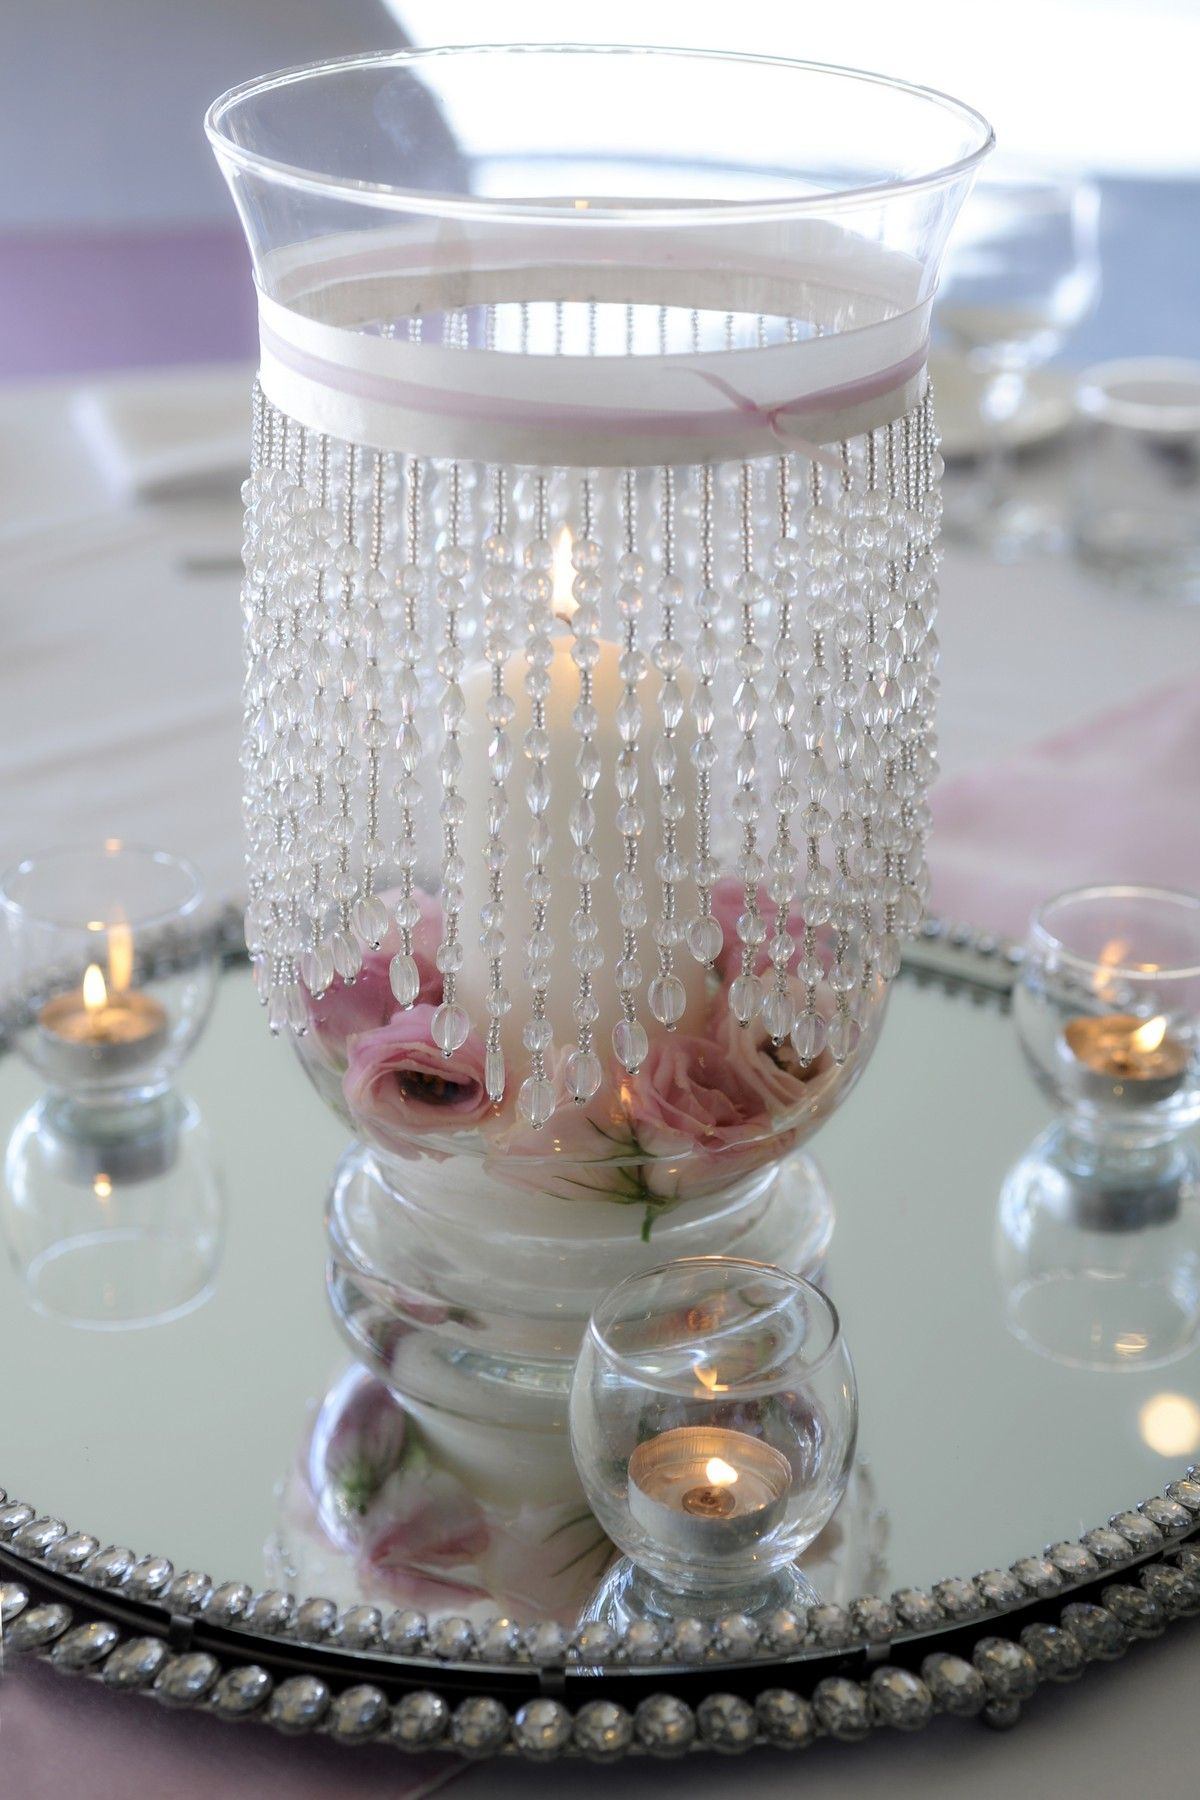 Hurricane vase wedding centerpieces pinterest